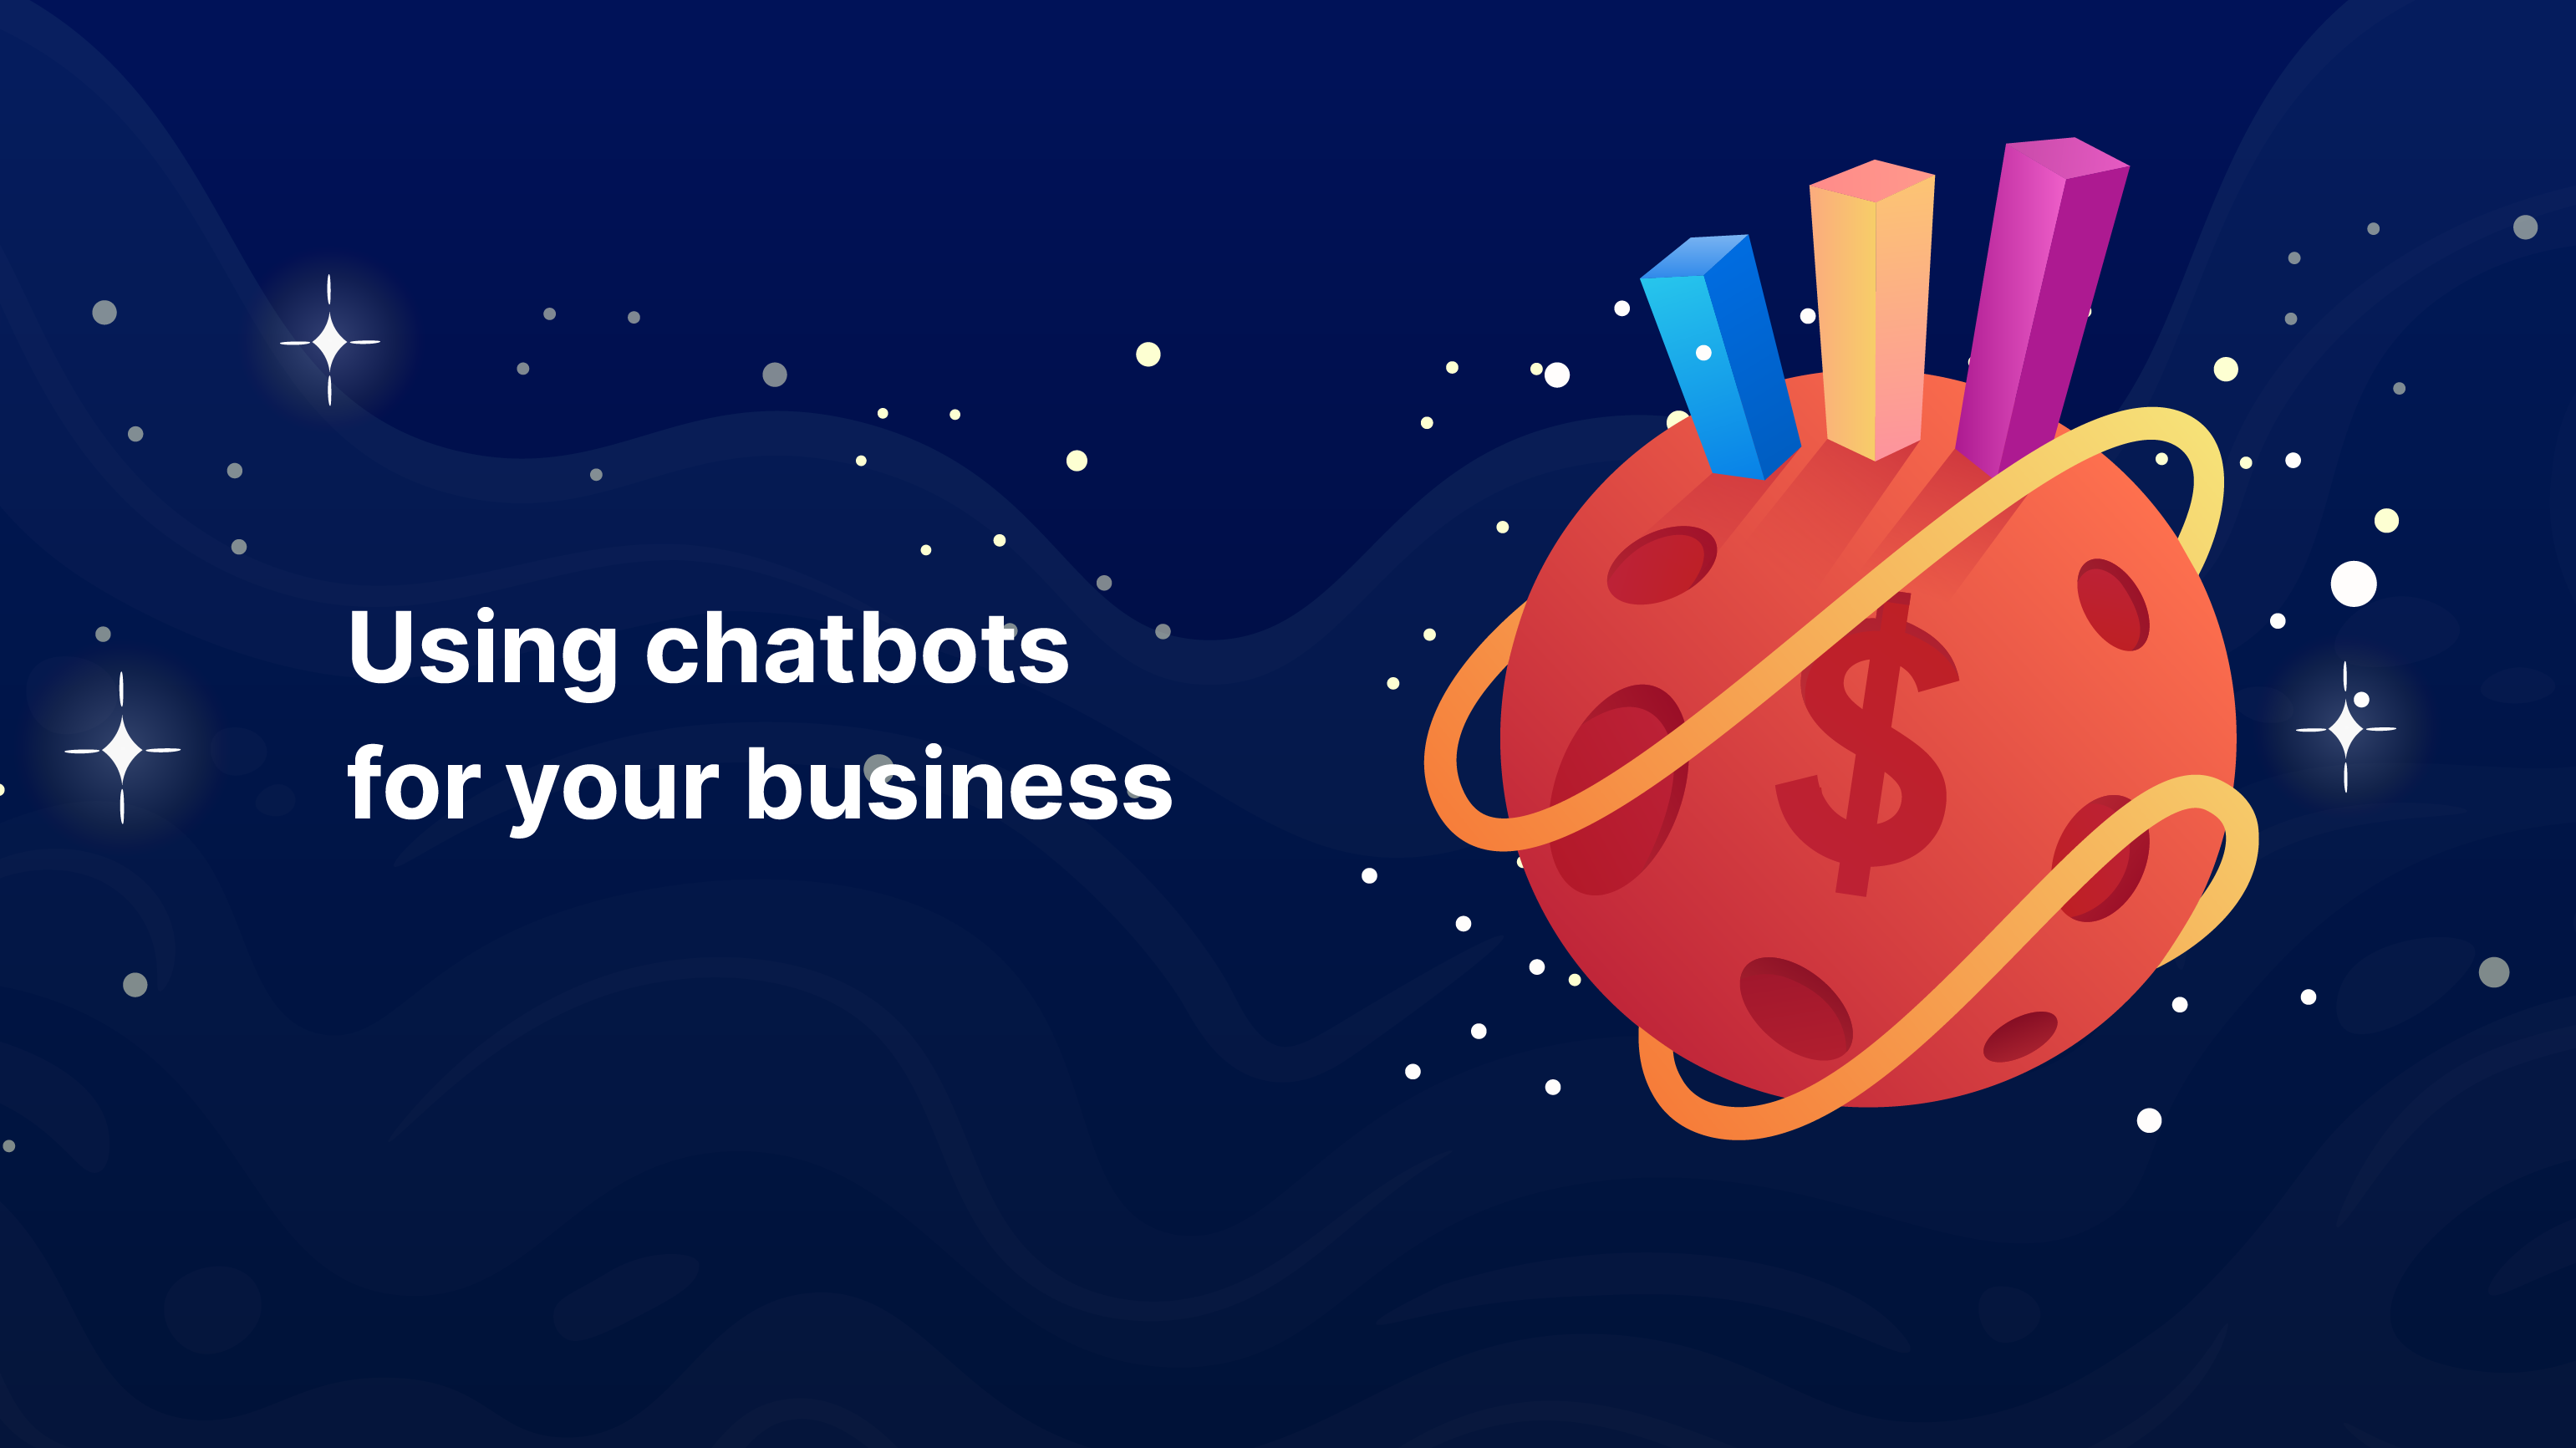 Adopting conversational AI or chatbots solutions as a part of customer support and productivity boost is probably the most interesting way businesses can give a better experience while boosting their revenue. (Illustration: Kata.ai)